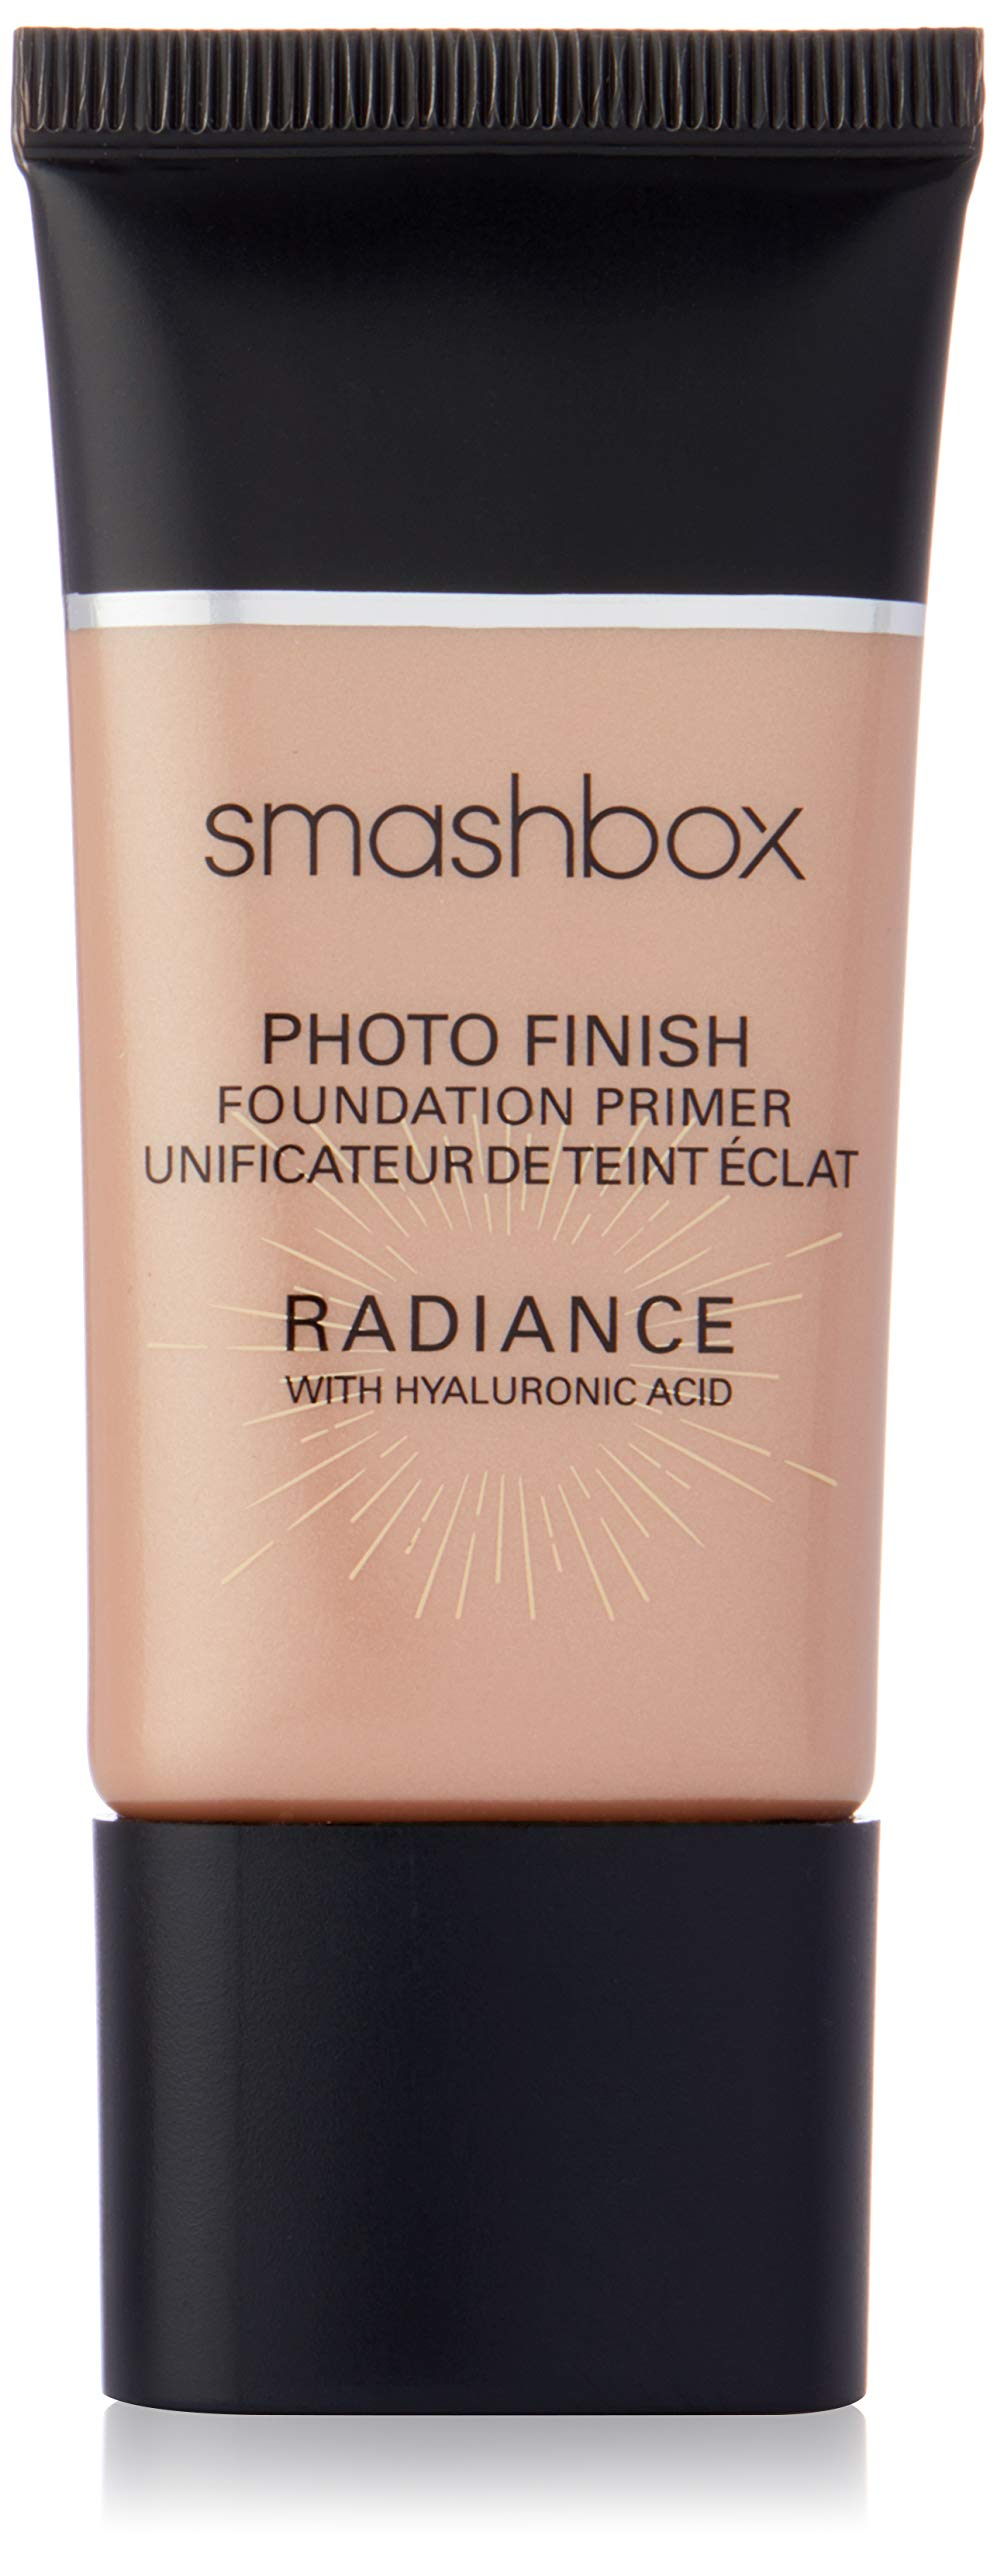 Smashbox Photo Finish Radiance Primer, 1 Fluid Ounce by Smashbox